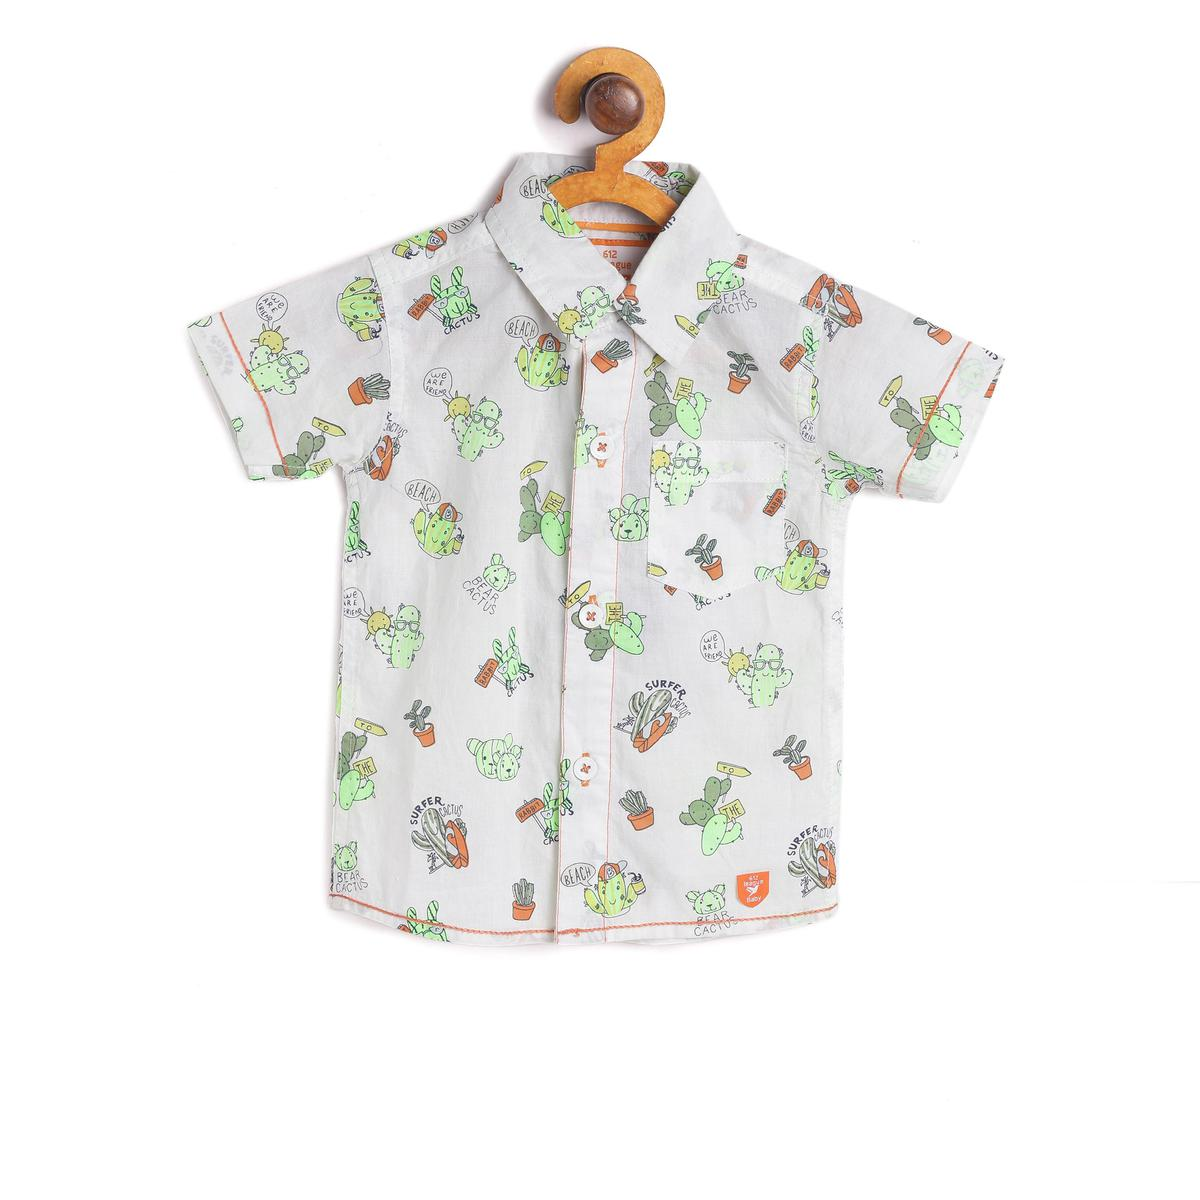 612 League - White Colored Printed Shirt For Baby Boys